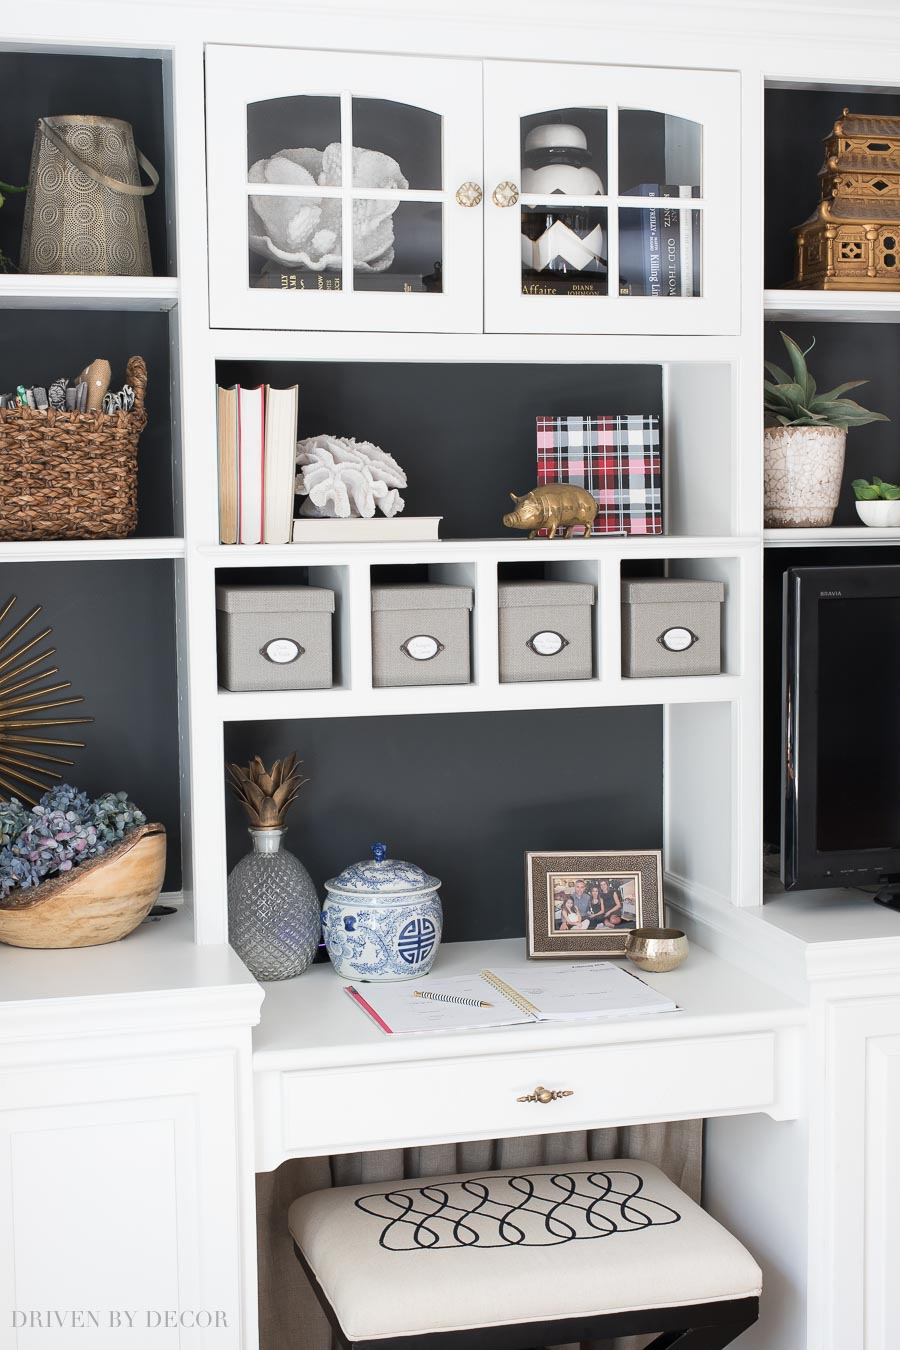 Awesome tips on how to style your bookcase and shelving!